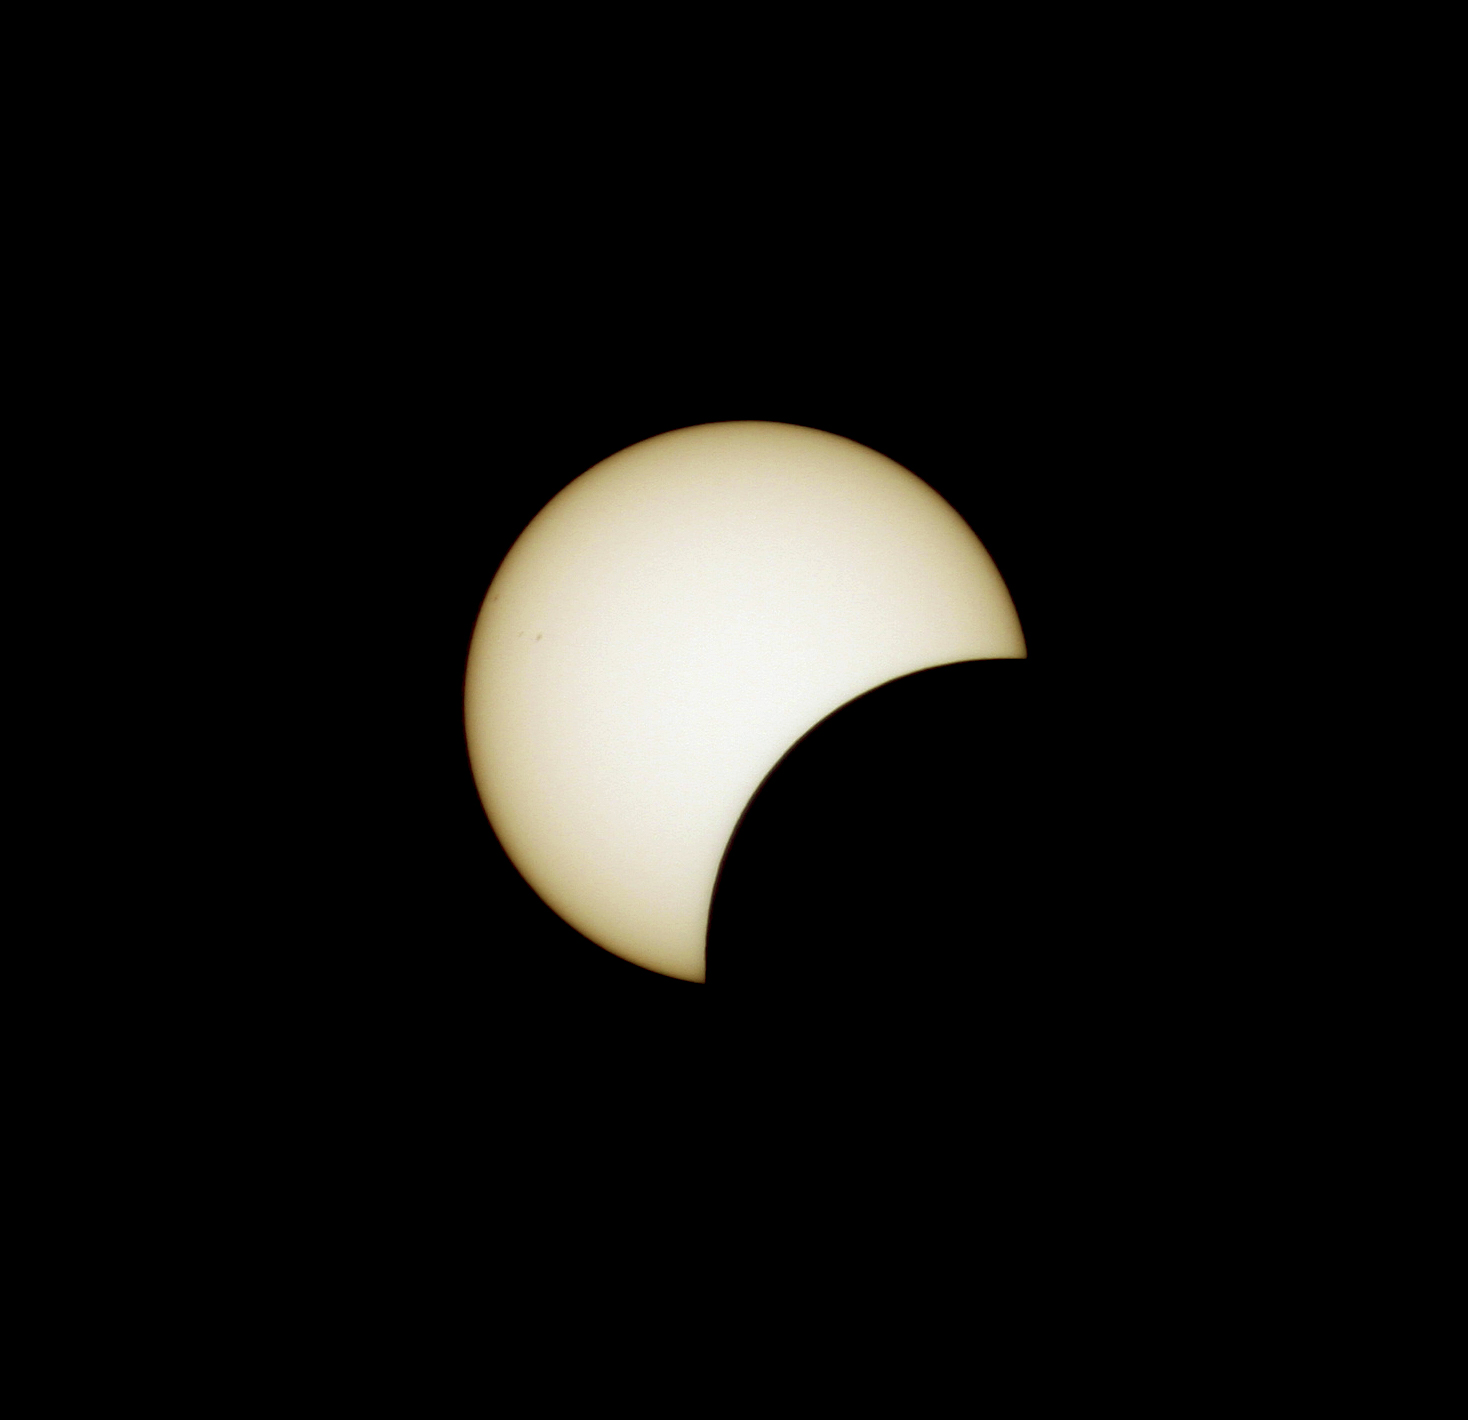 The Sun in partial eclipse, as imaged through a specialist solar telescope. Image: Jamie Cooper.